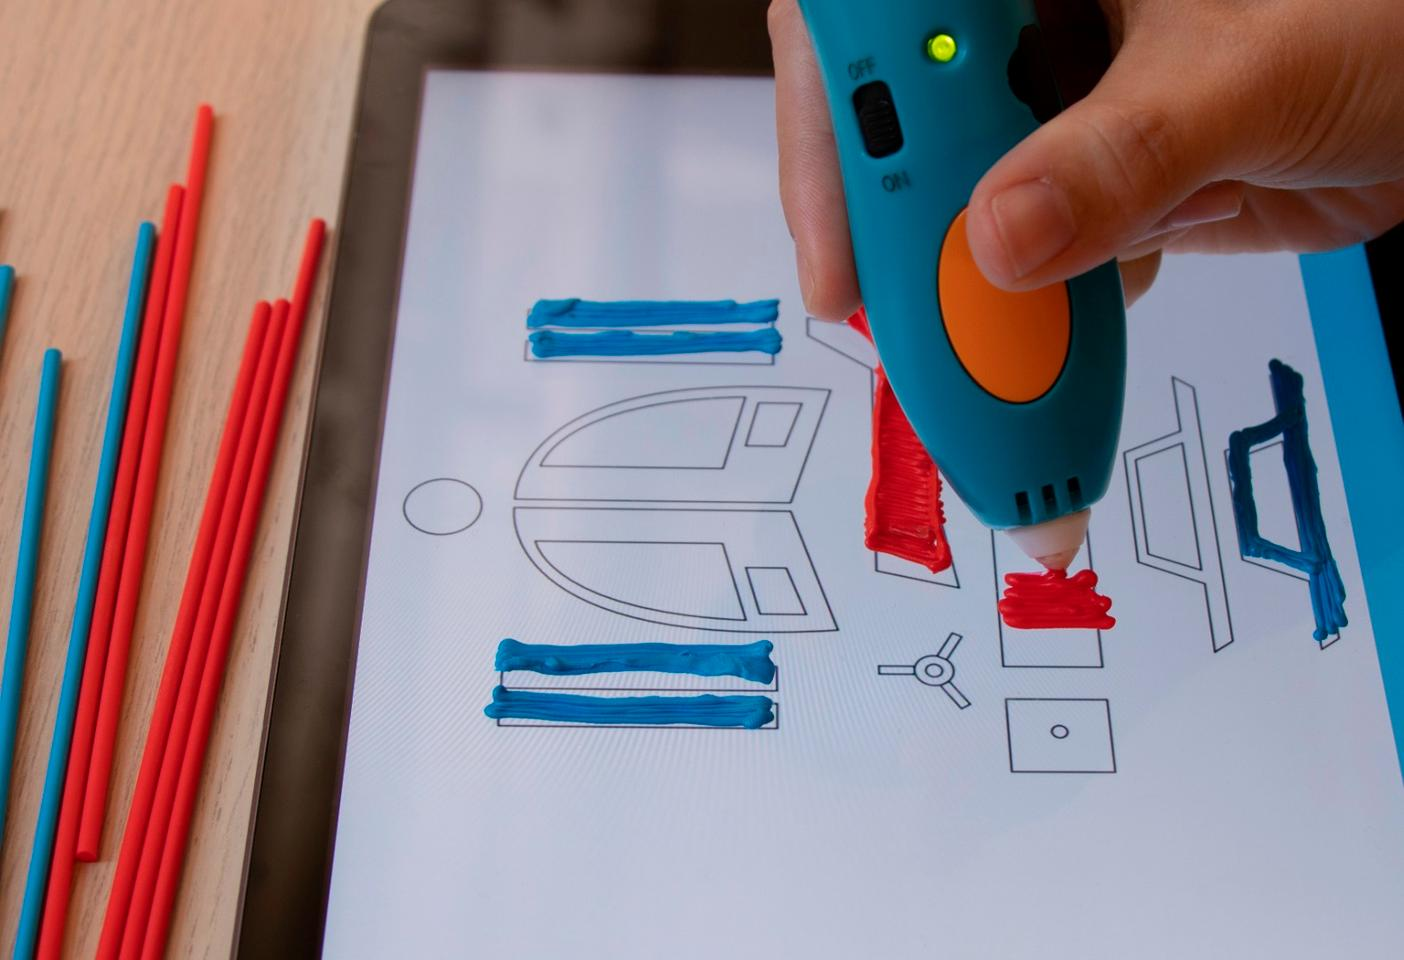 The 3Doodler App will walk users through 3D drawing basics